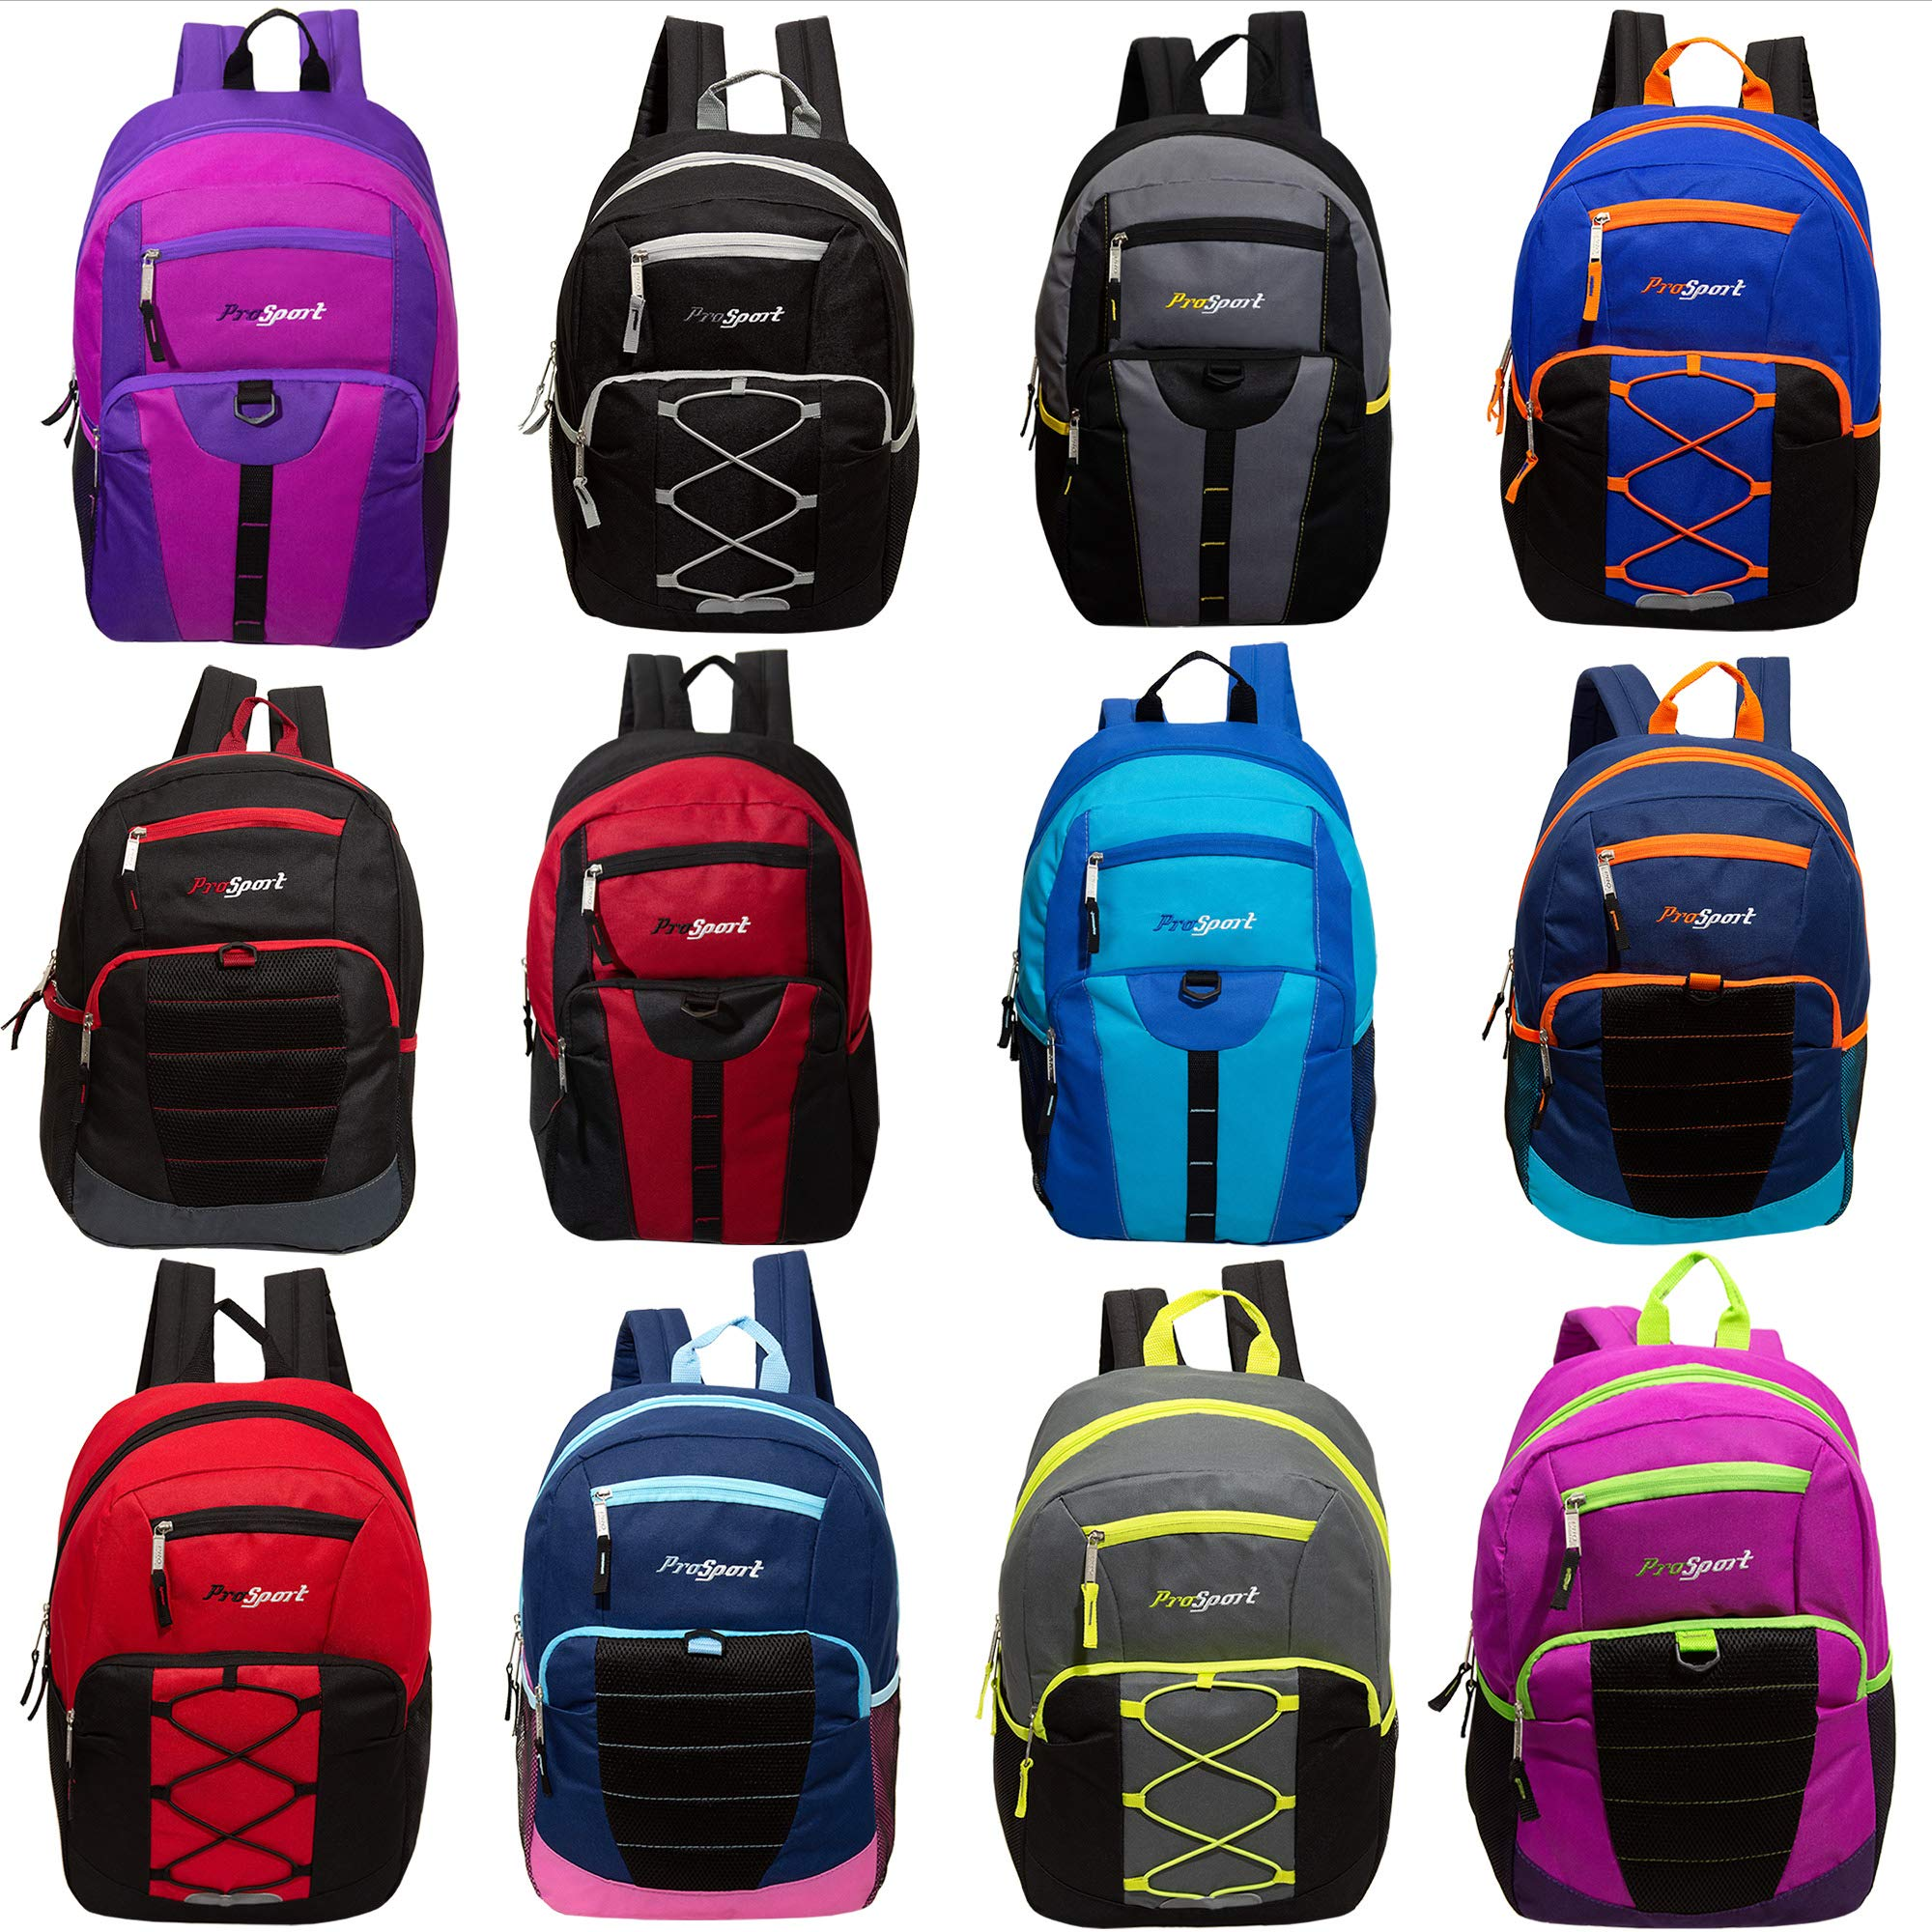 17'' Mixed Bulk Backpack Assortment in 12 Assorted Styles - Wholesale Case of 24 Bookbags by prosport